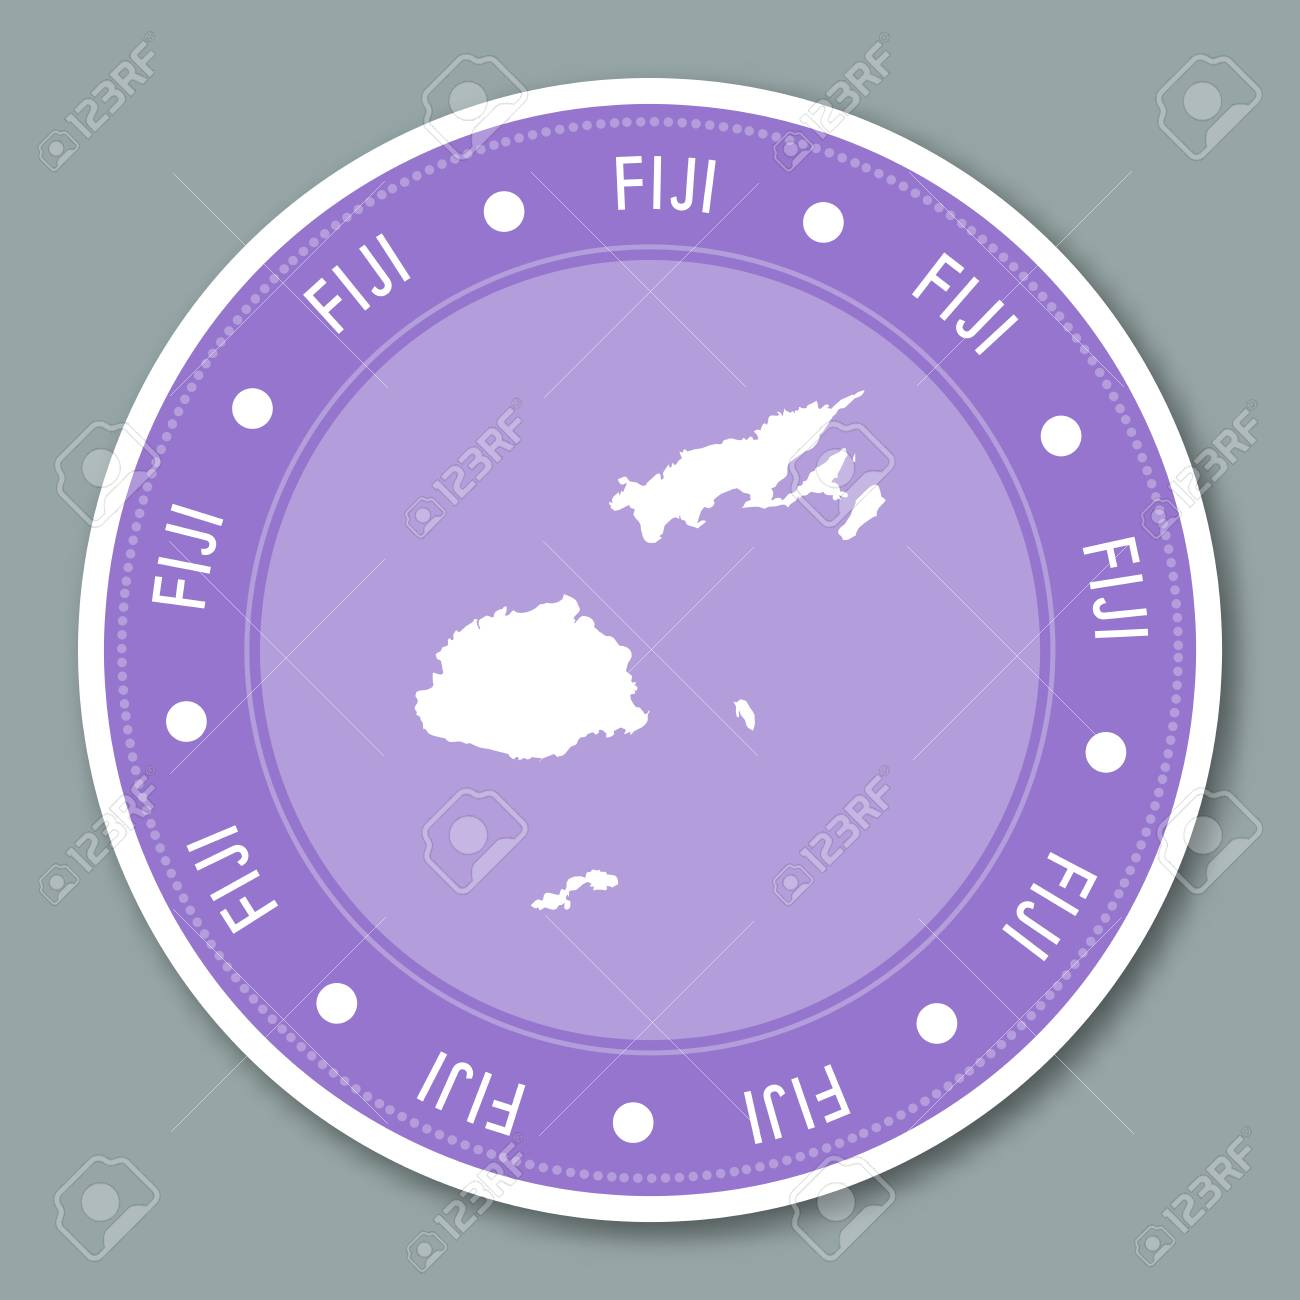 Fiji label flat sticker design. Patriotic country map round lable...